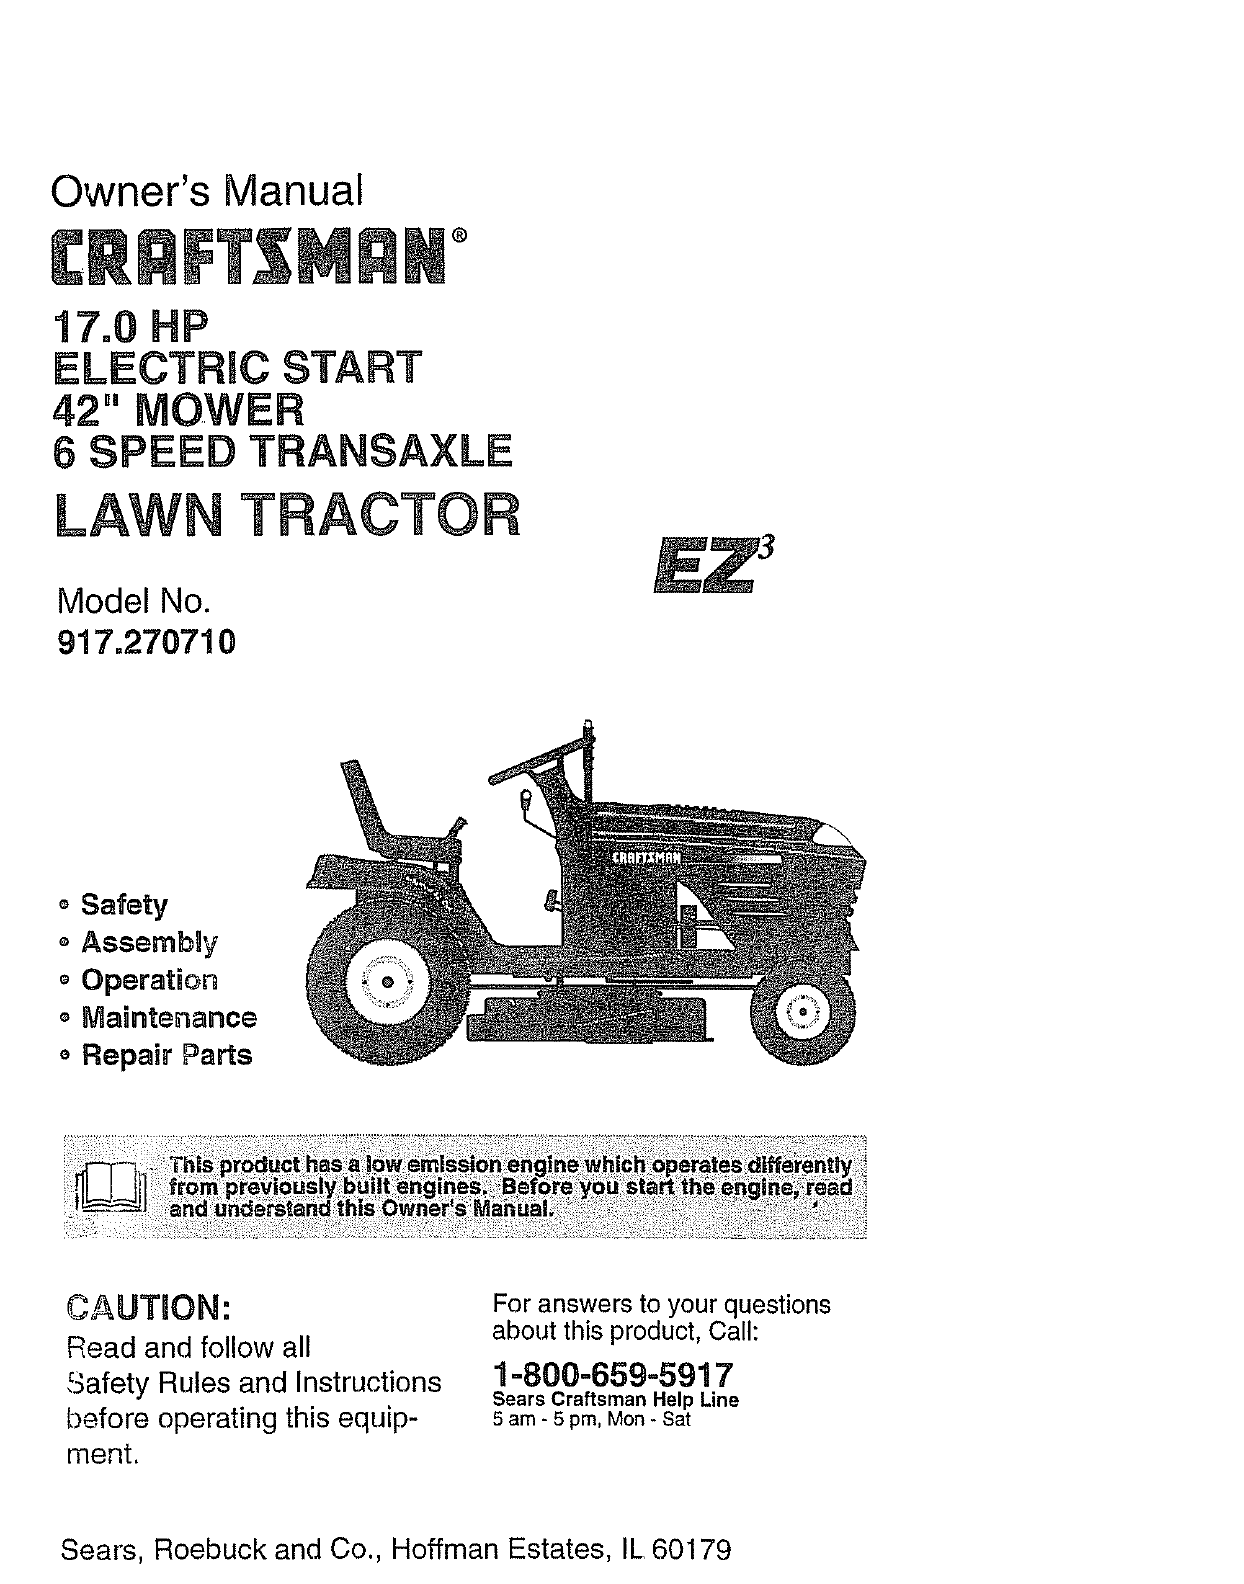 craftsman 917270710 user manual lawn tractor manuals and guides l0807098 rh usermanual wiki owners manual for craftsman riding mower owners manual for craftsman riding mower